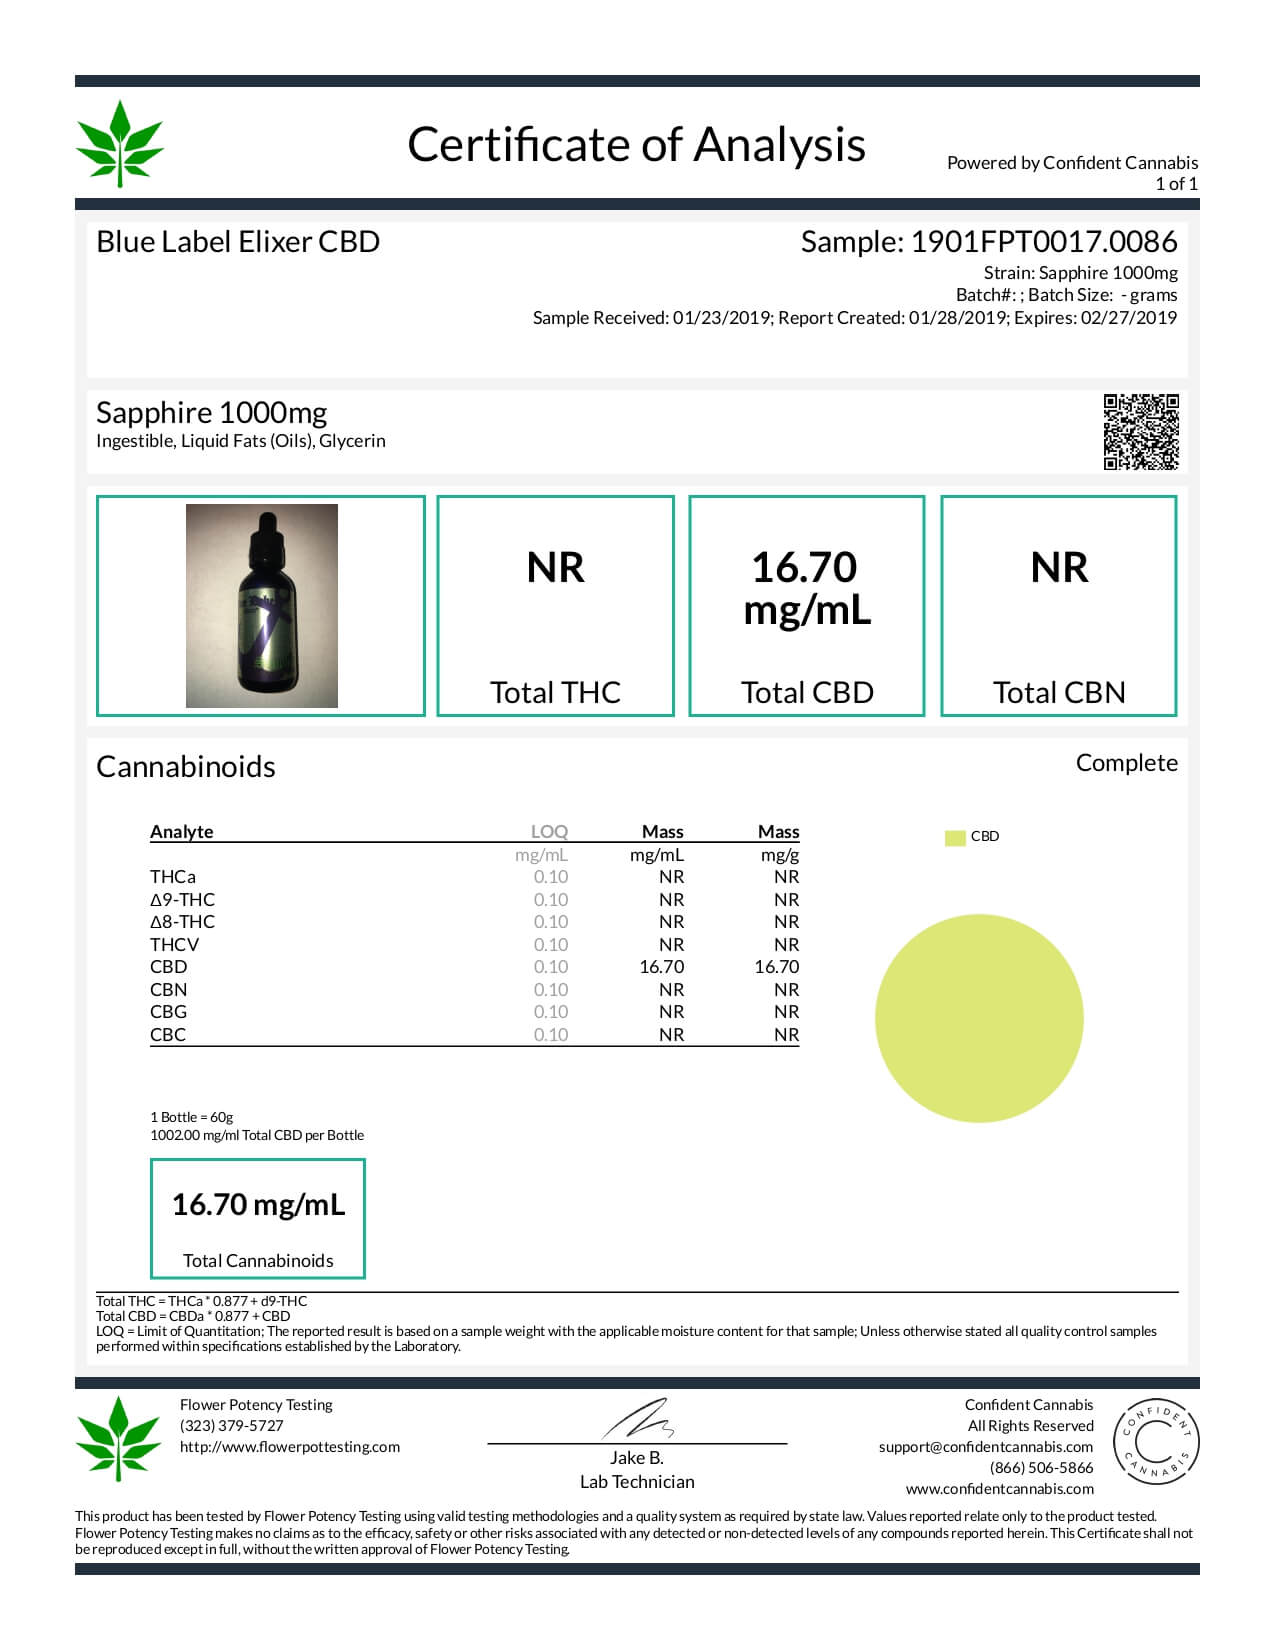 Blue Label CBD Vape Juice Sapphire 1000mg Lab Report